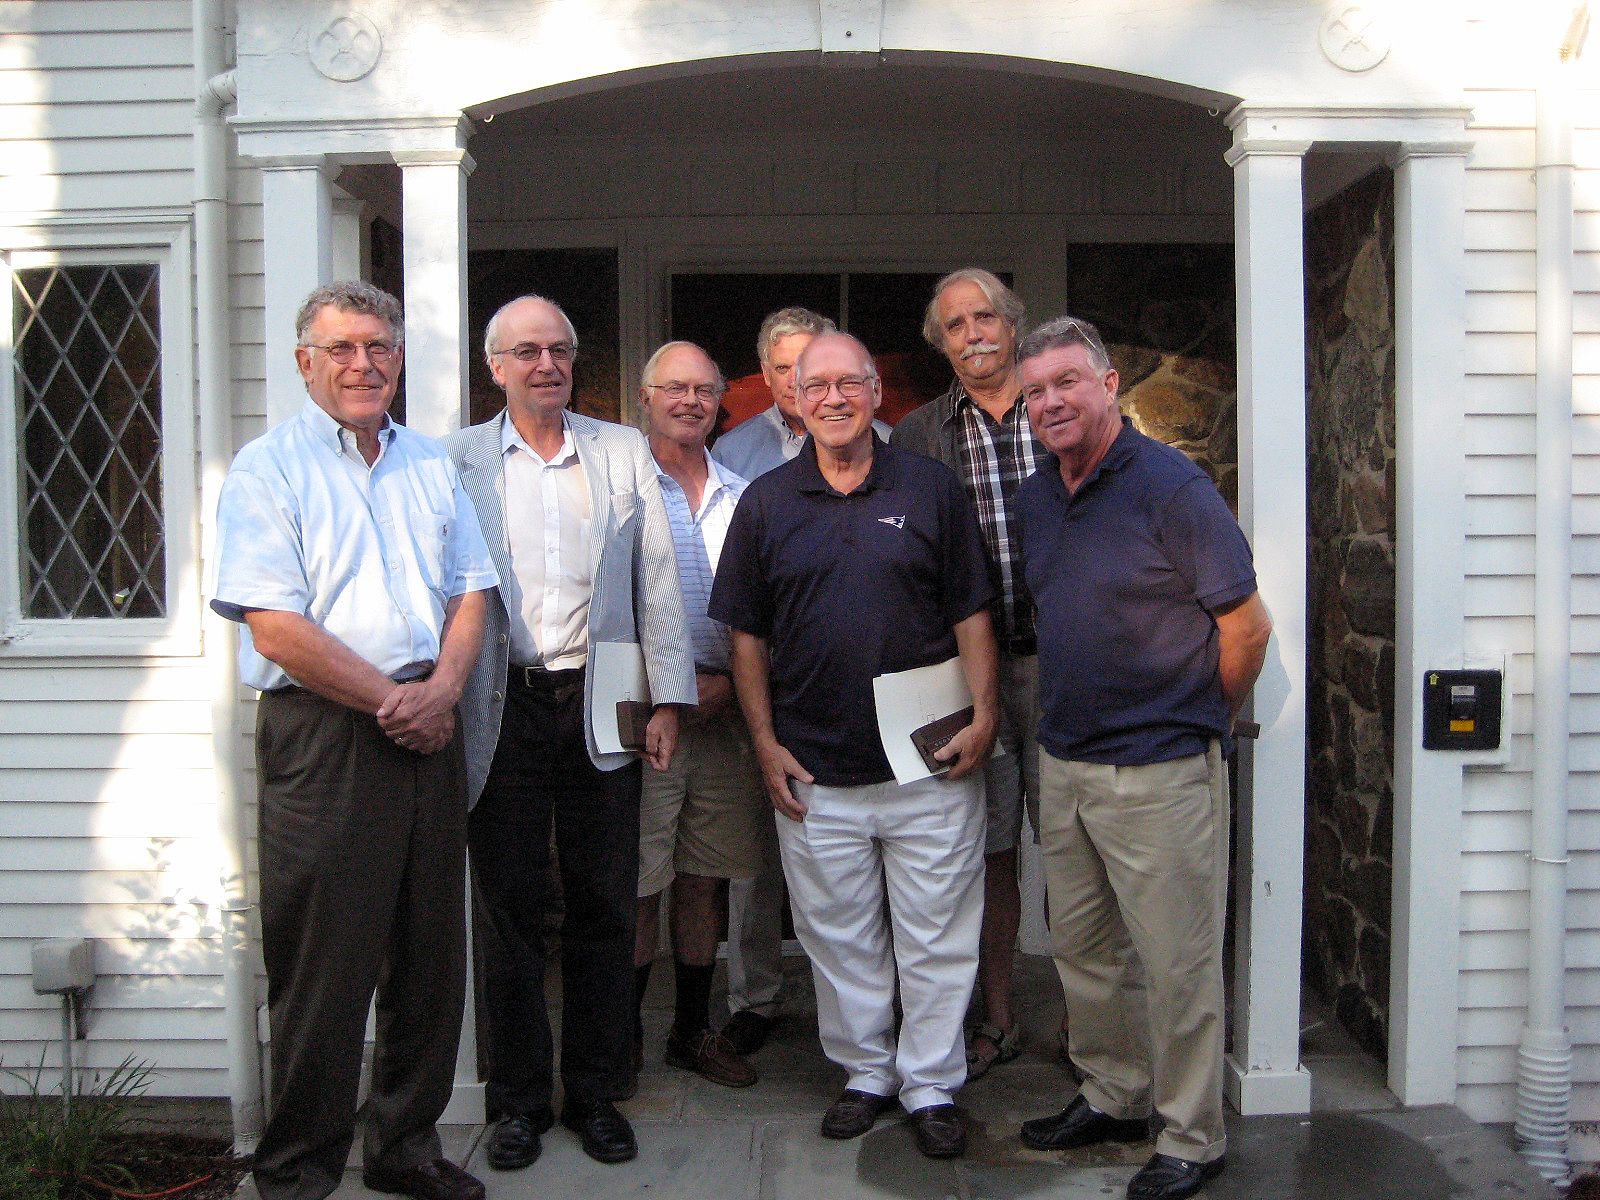 Alumni from the Class of 1964. (L-R) Frank Brown, Jeff Palmer, Charlie Whipple, Paul O'Conor, Mike Croke, Jack Denny-Brown, Kent Parrot